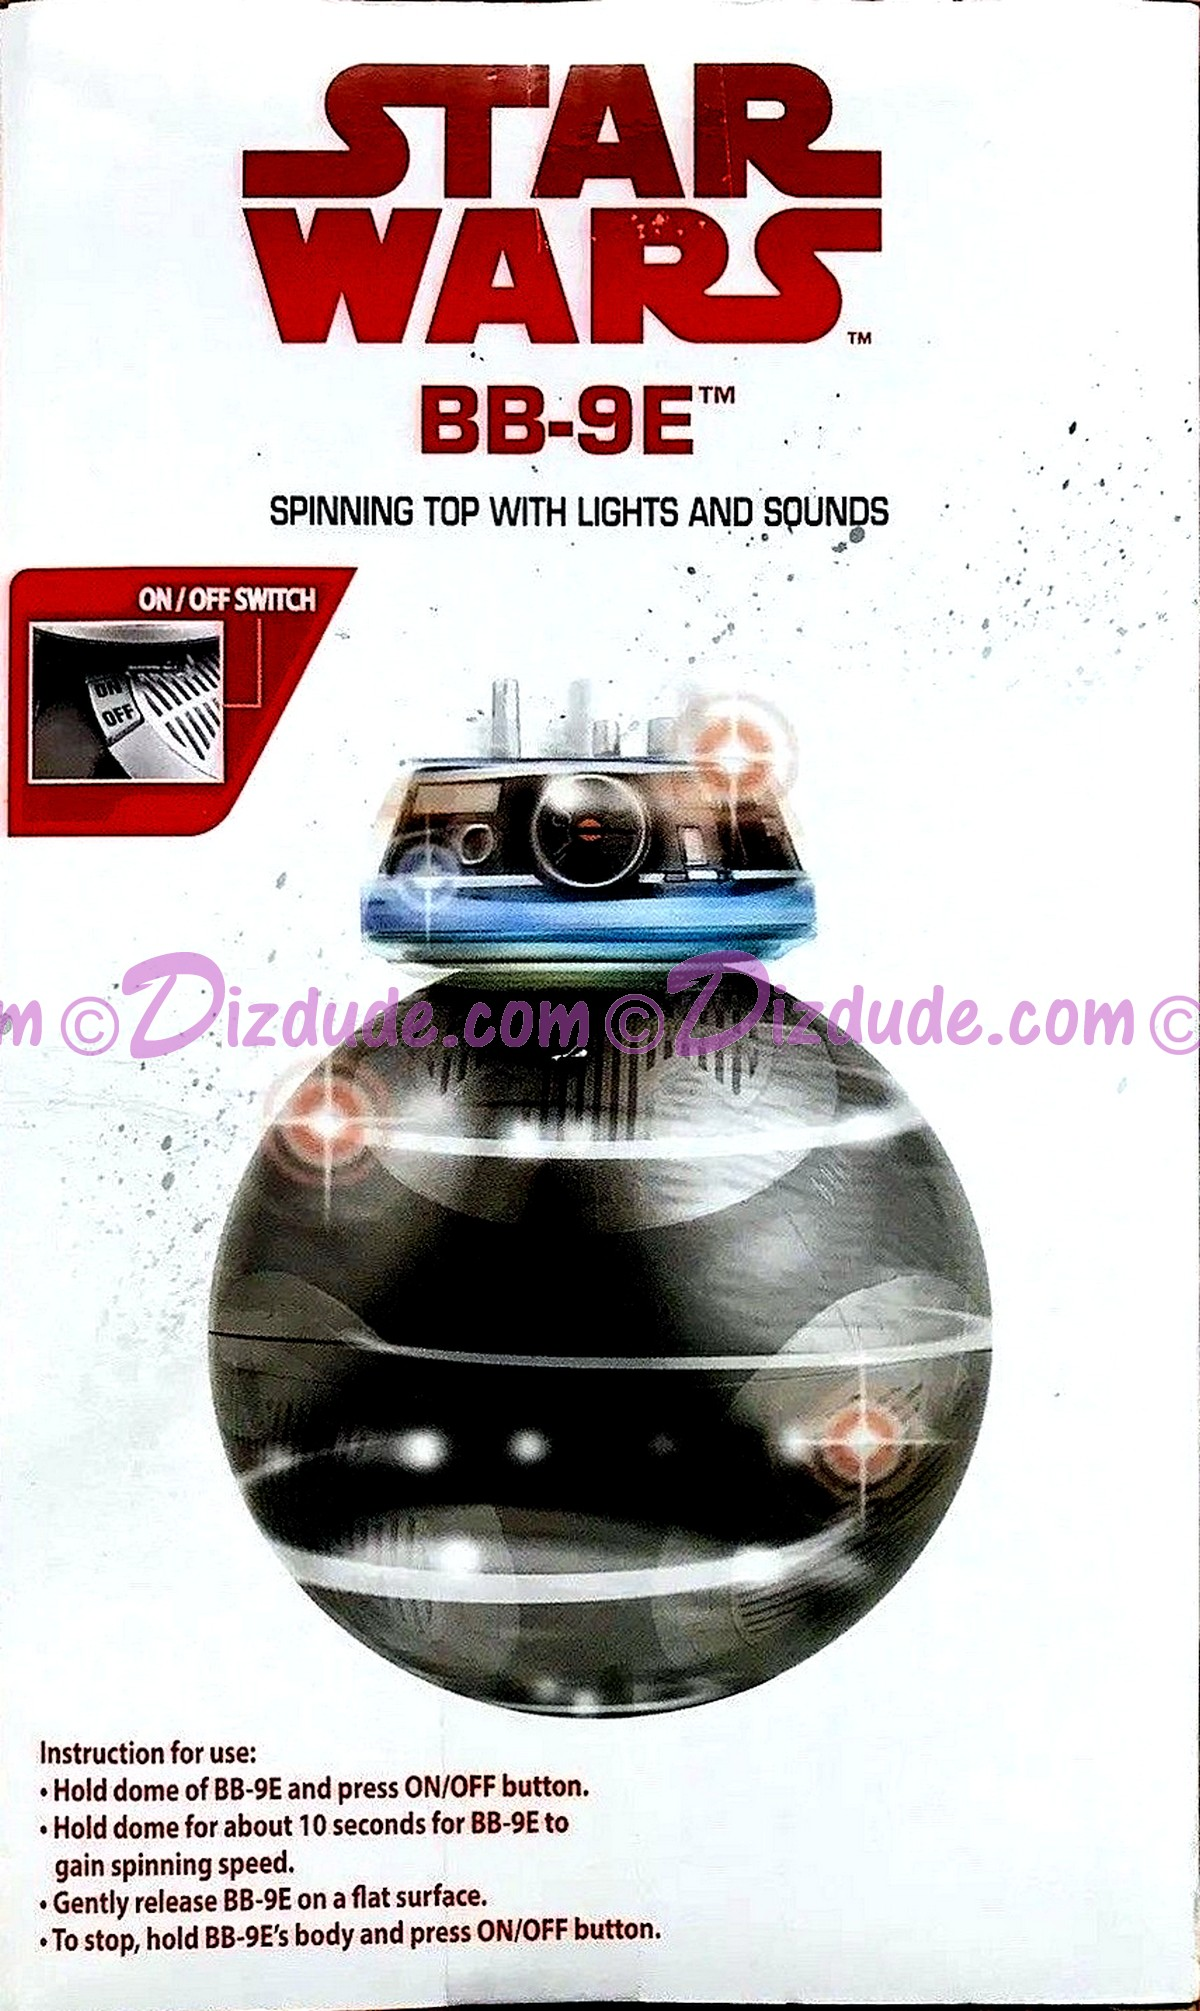 Star Wars BB-9E Spinning Top with Lights and Sounds